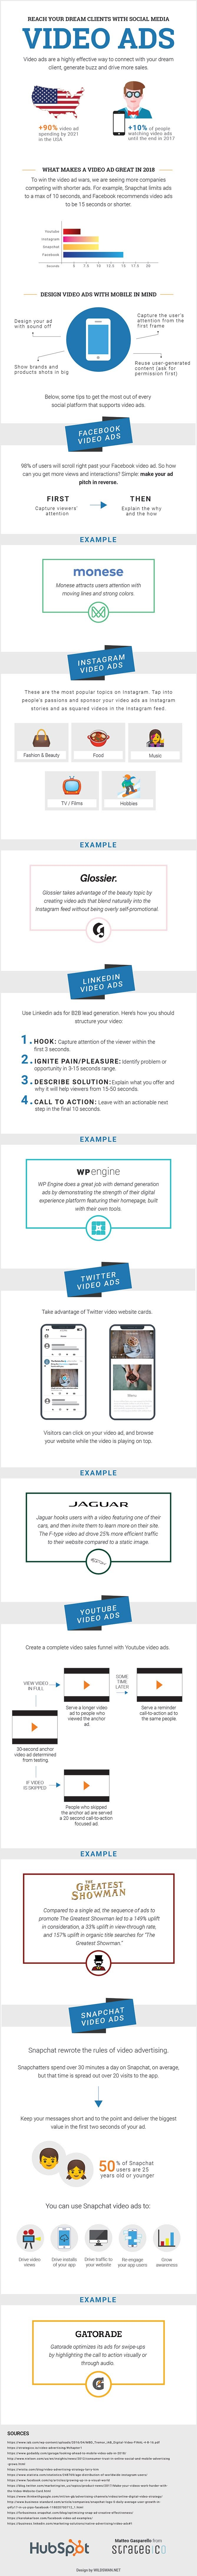 How to Connect With Your Dream Clients Through Social Media Video Ads - infographic